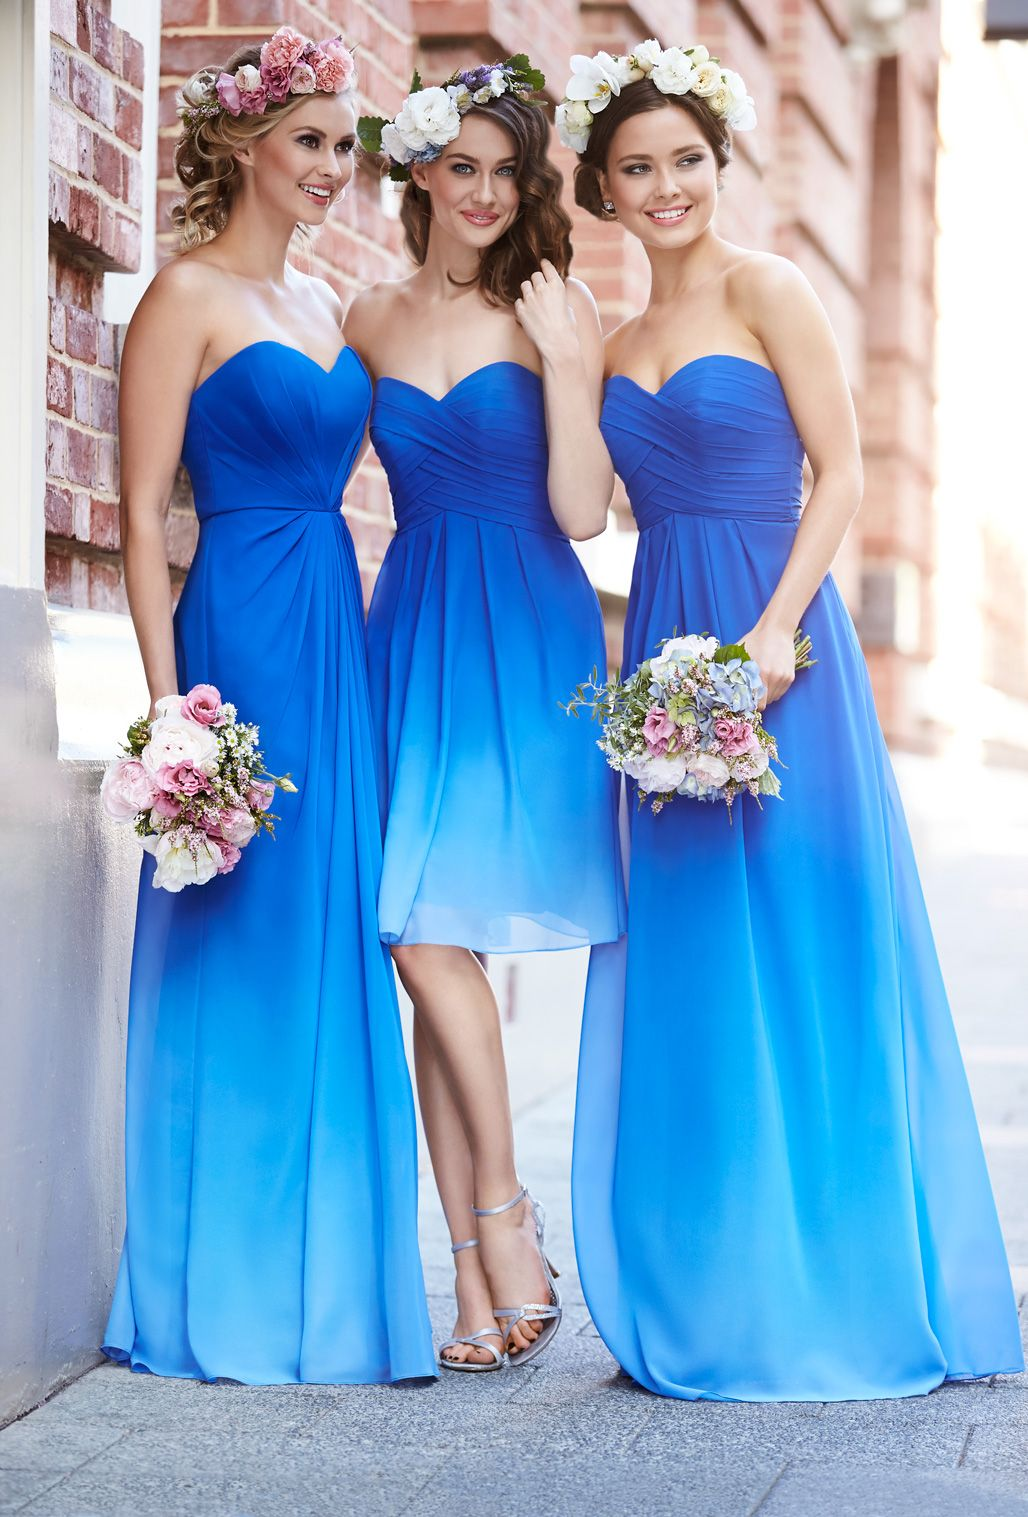 00b9ab59254c Another prom dress that could make a lovely wedding dress. Description from  pinterest.com. I searched for this on bing.com/images